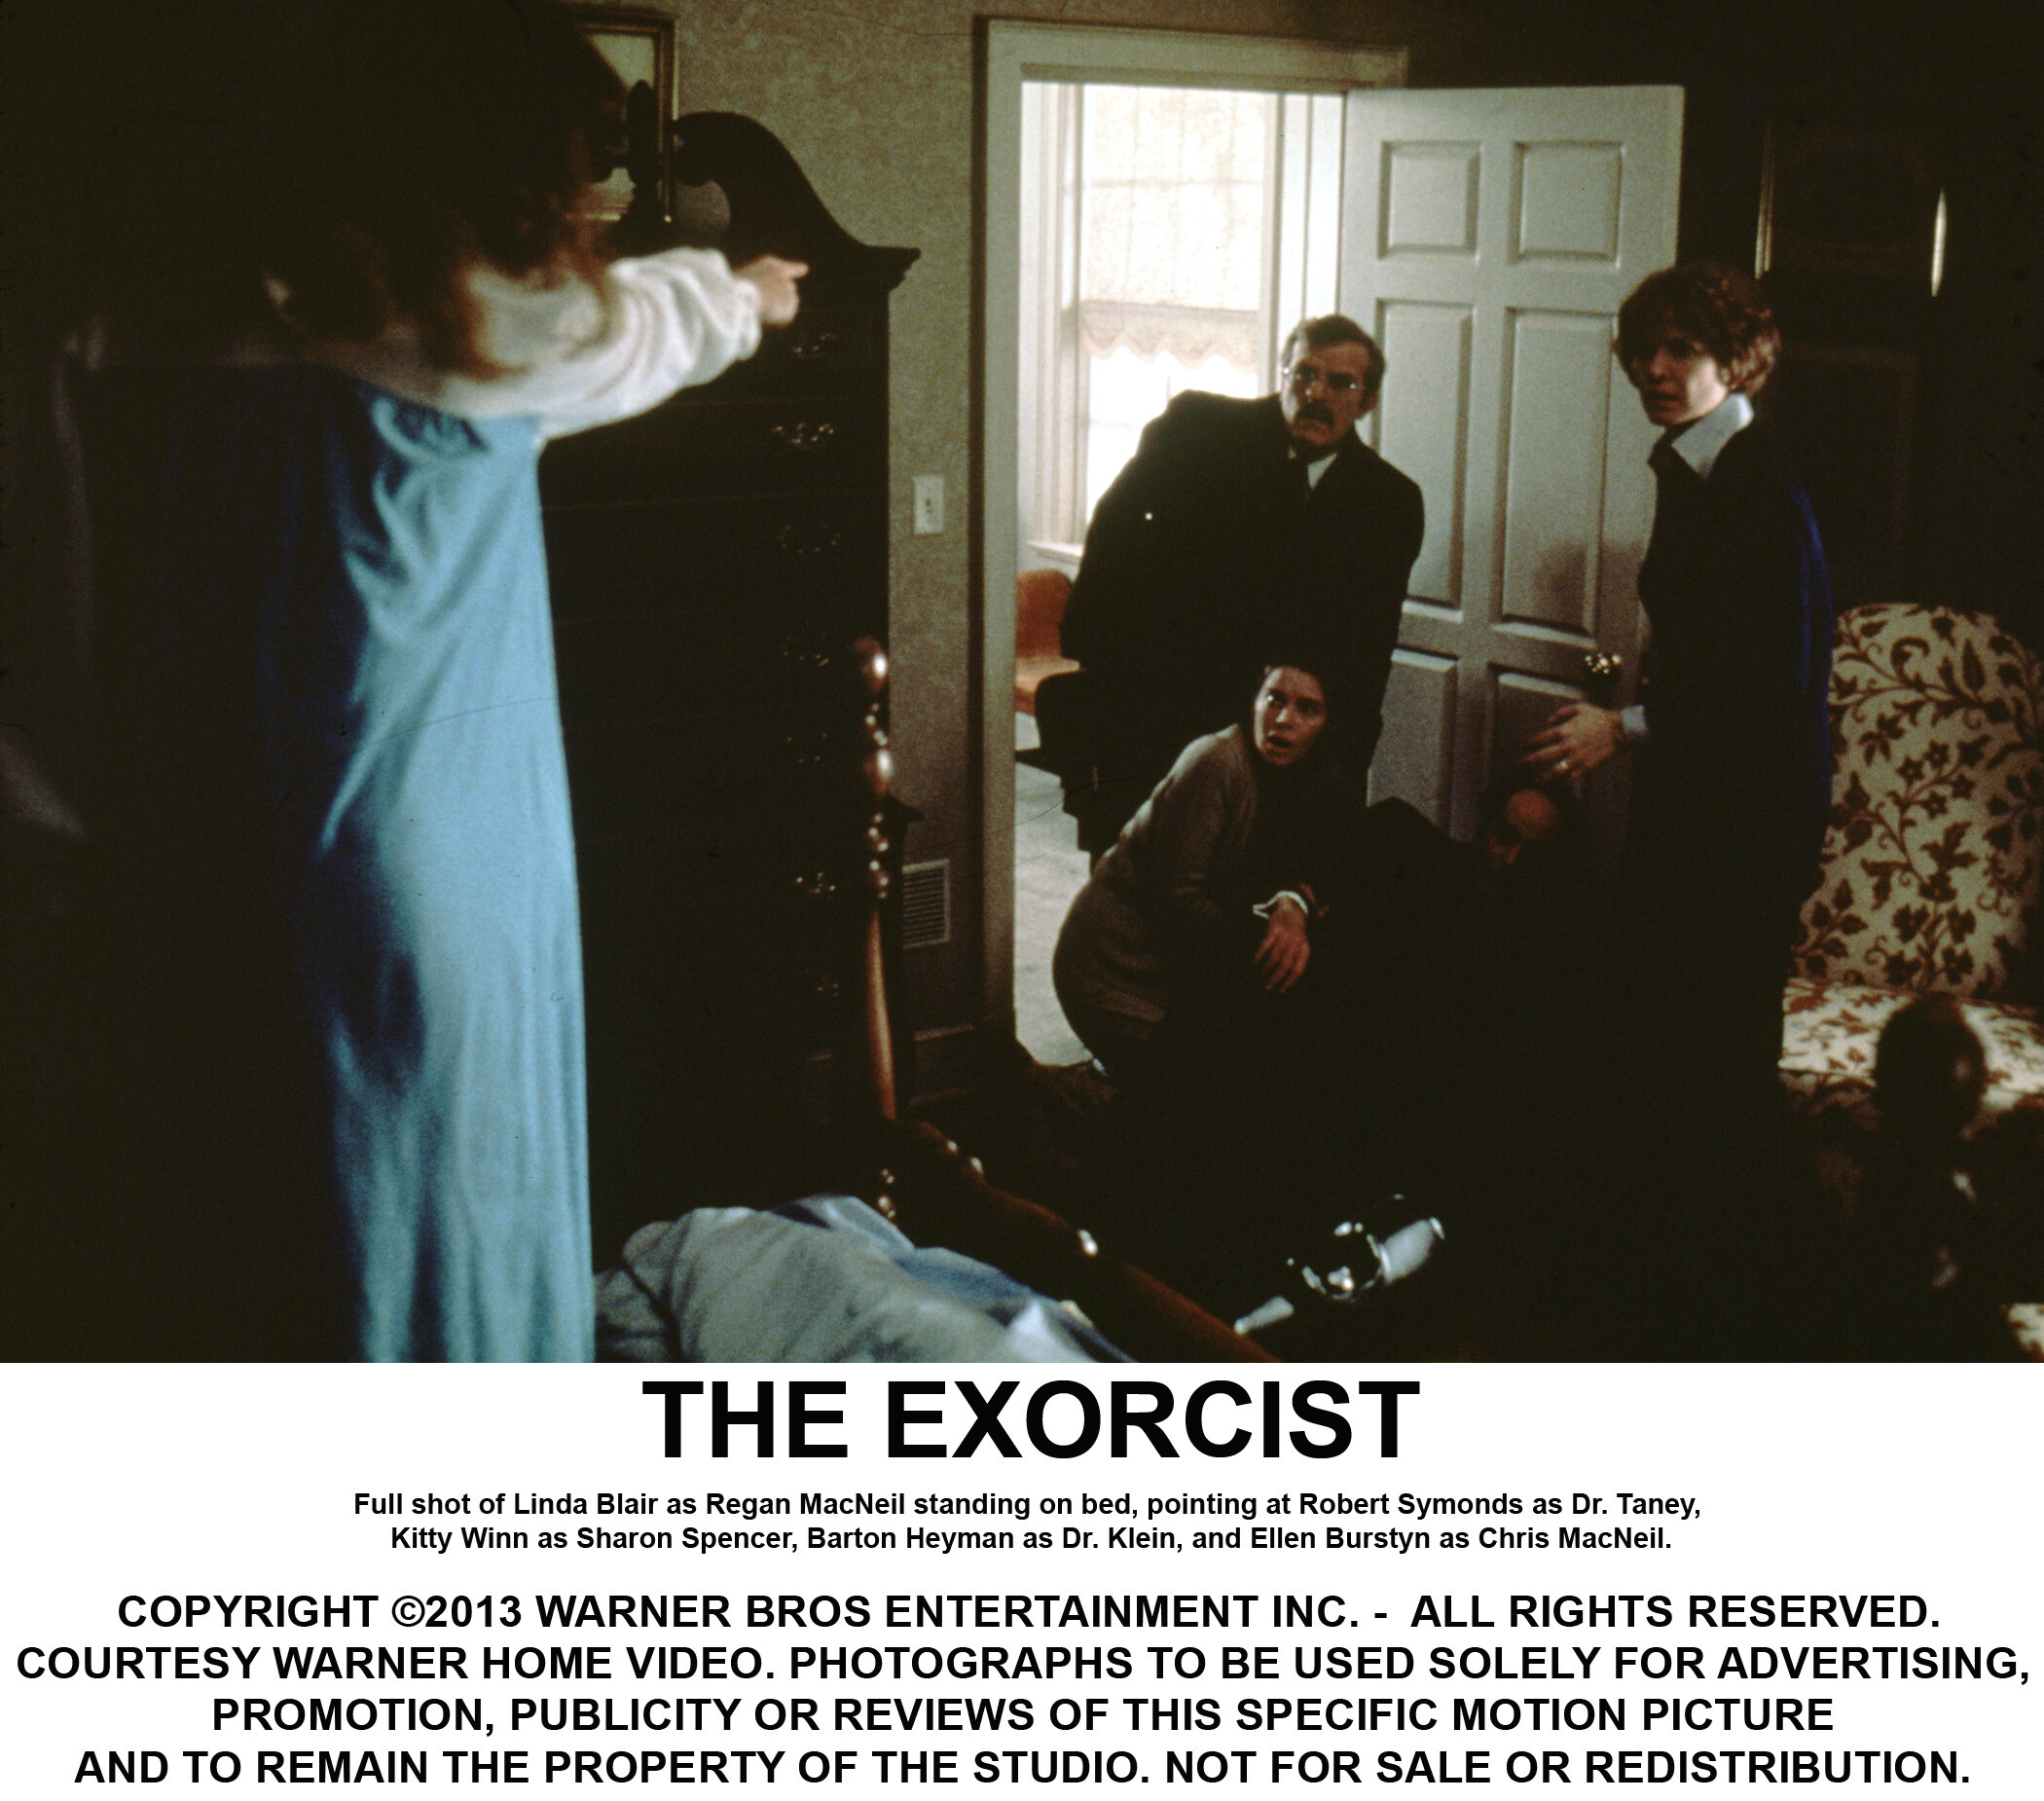 Ellen Burstyn to reprise her role in new 'The Exorcist' trilogy